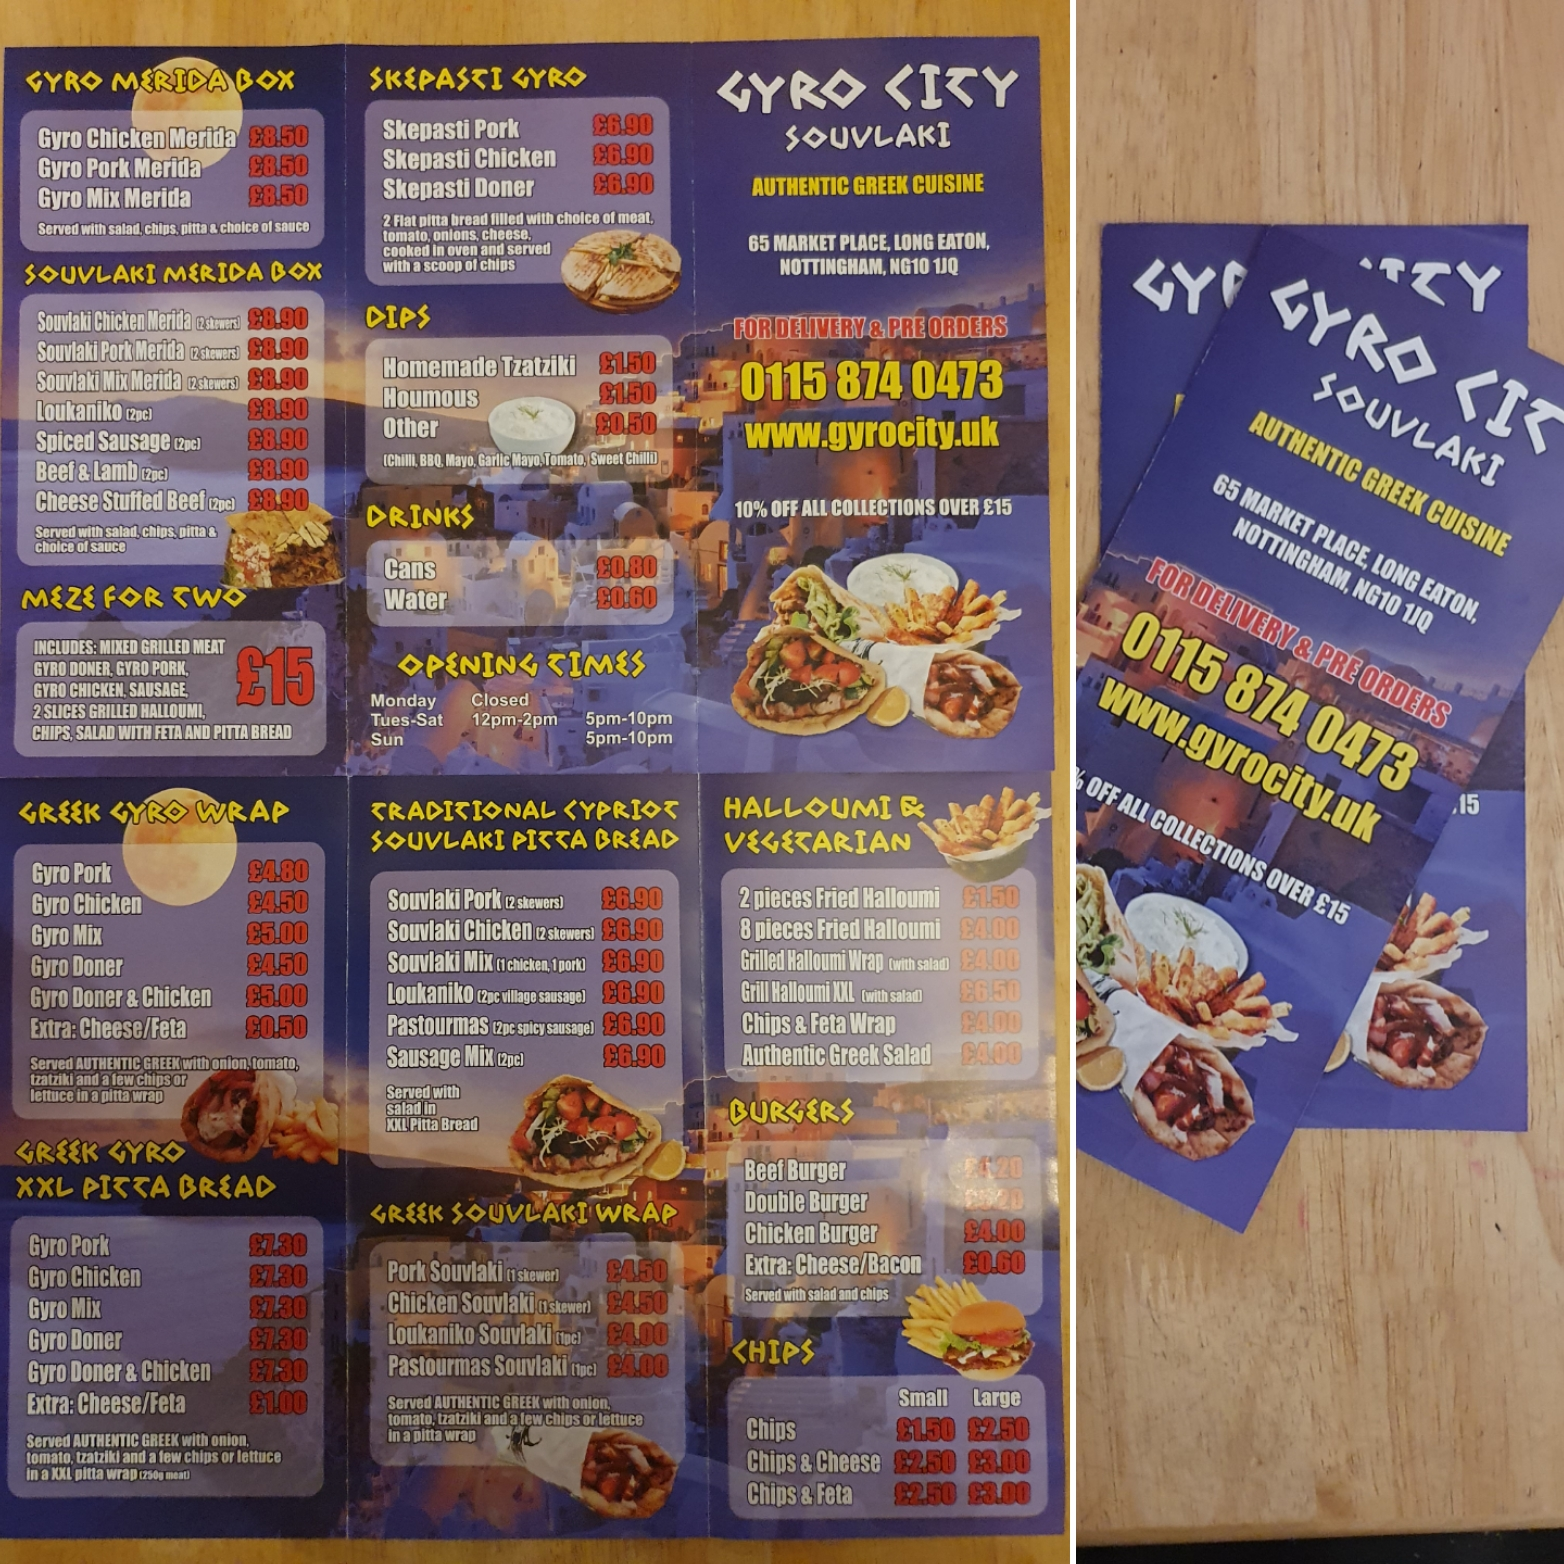 Gyro City Menu Design & Print